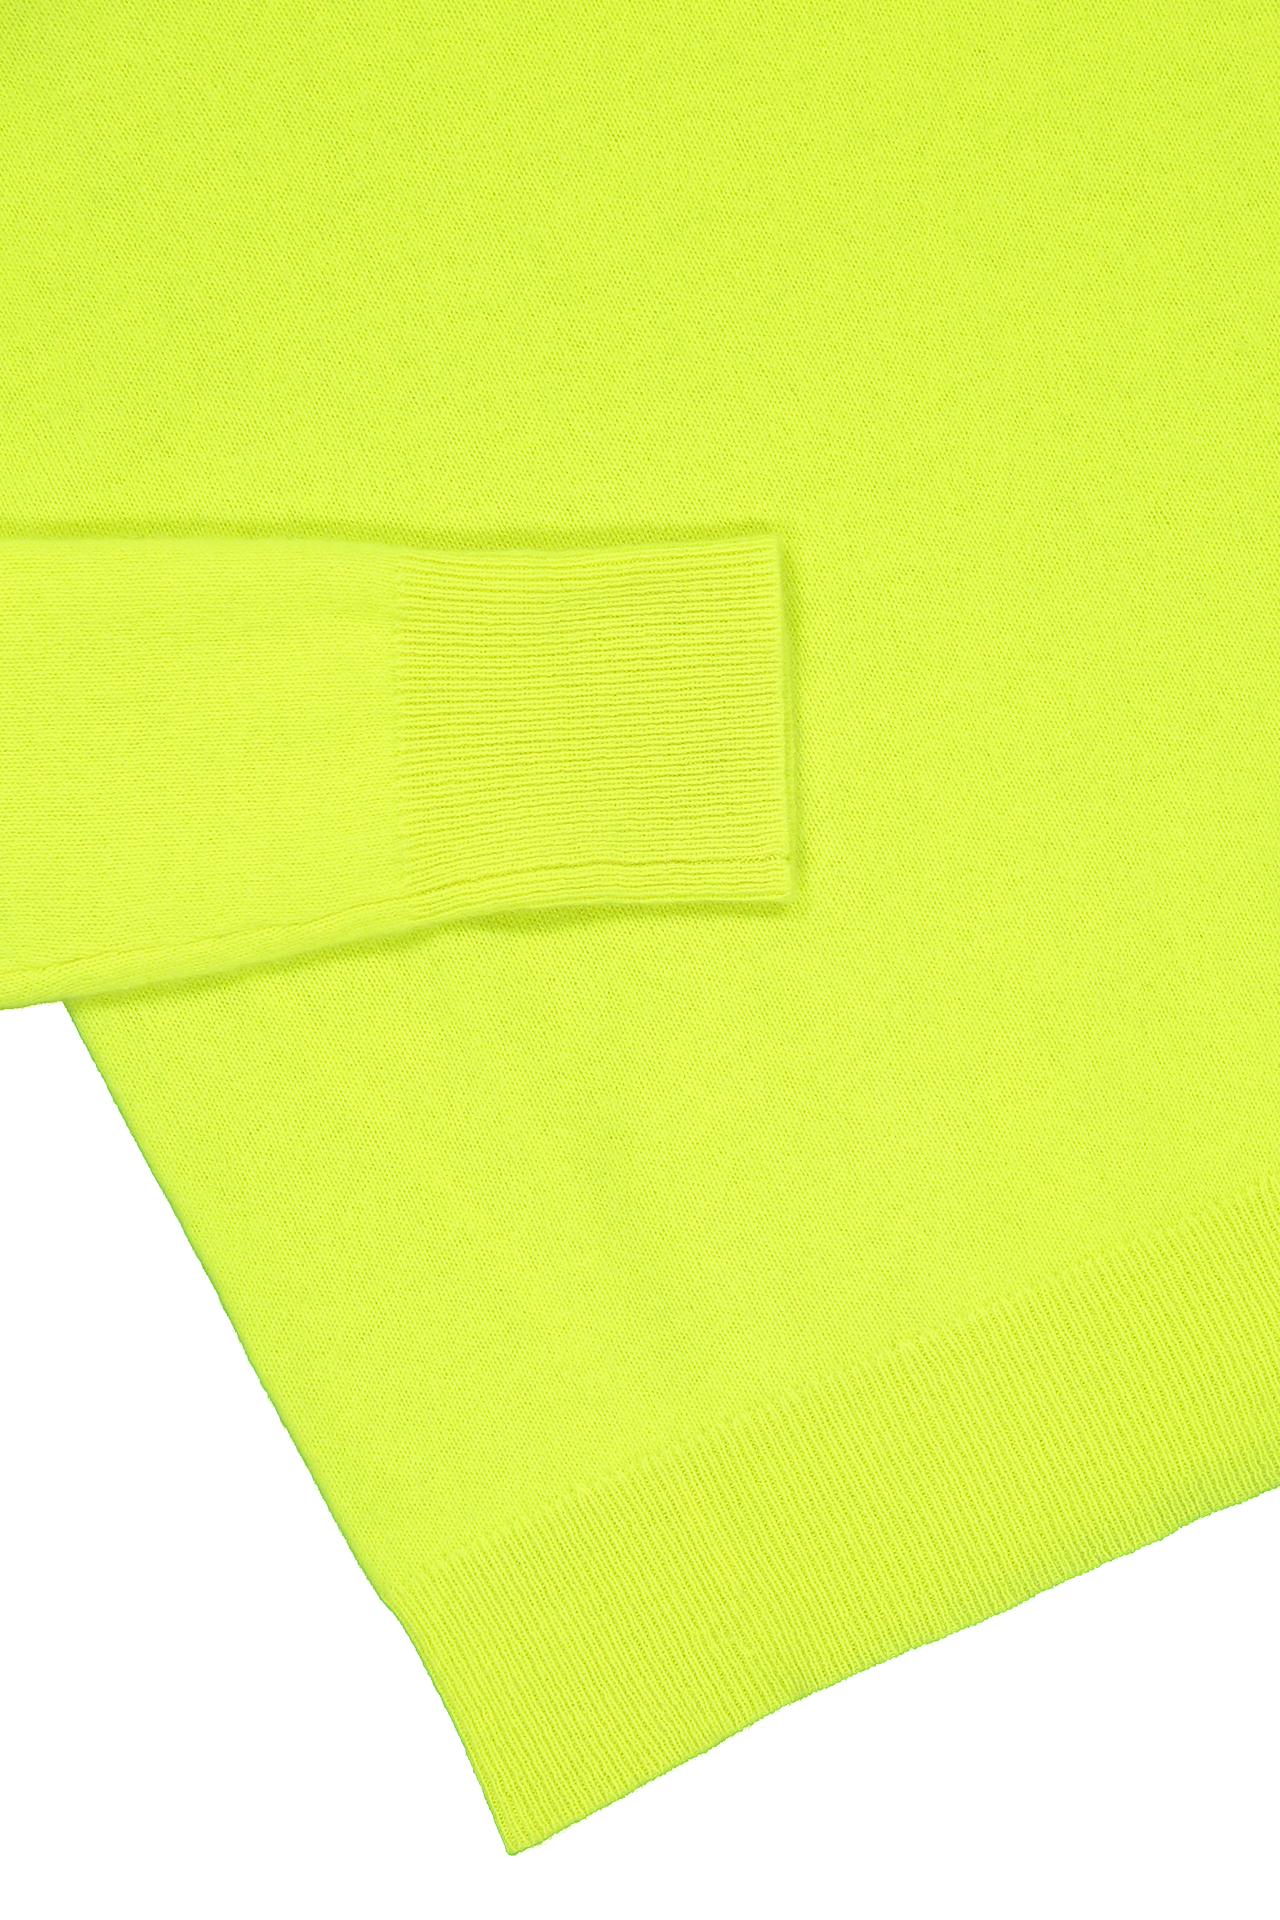 Hemline and cuff detail image of White & Warren Essential Crewneck Sweater Neon Pineapple